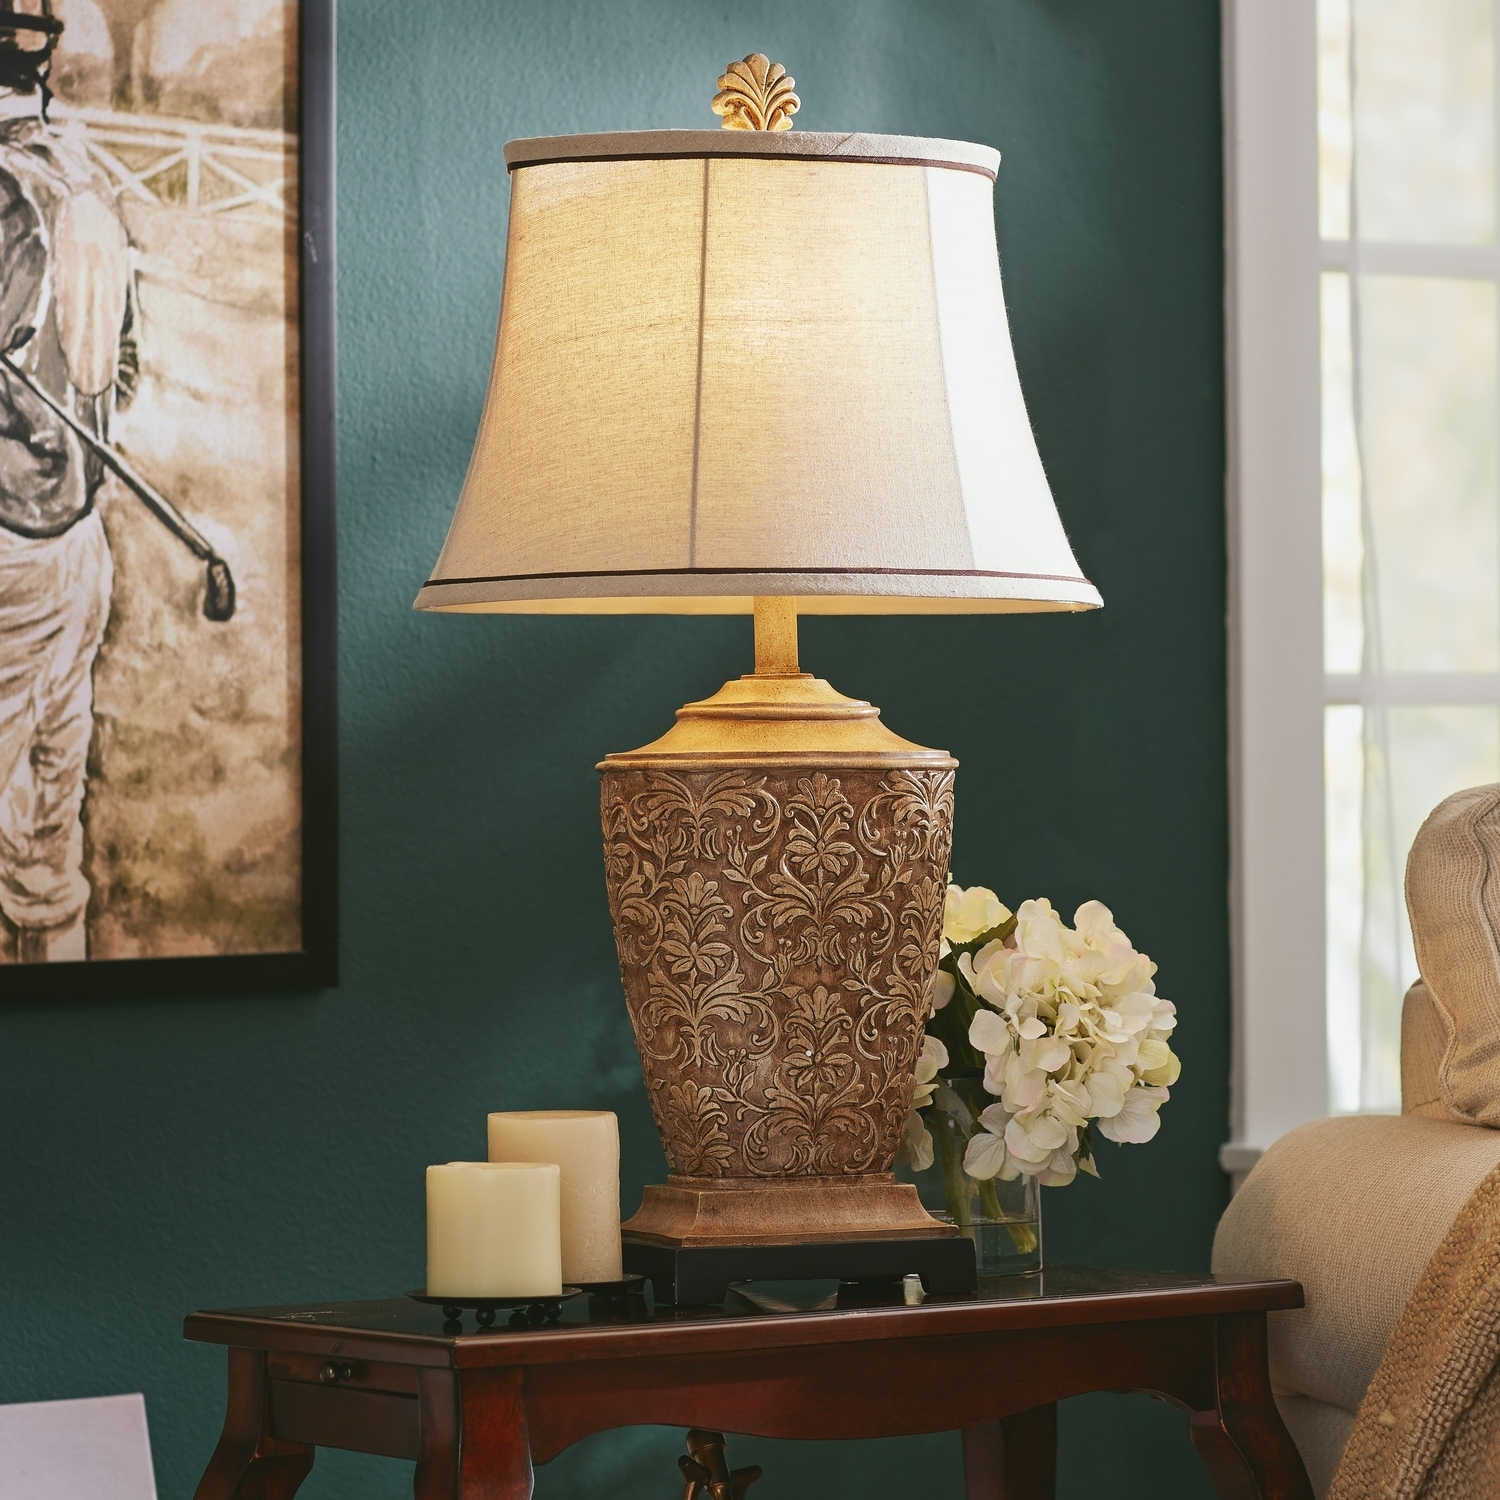 Where To Buy Floor Lamps Where To Put Floor Lamp In Living Room Within Newest Red Living Room Table Lamps (View 15 of 15)